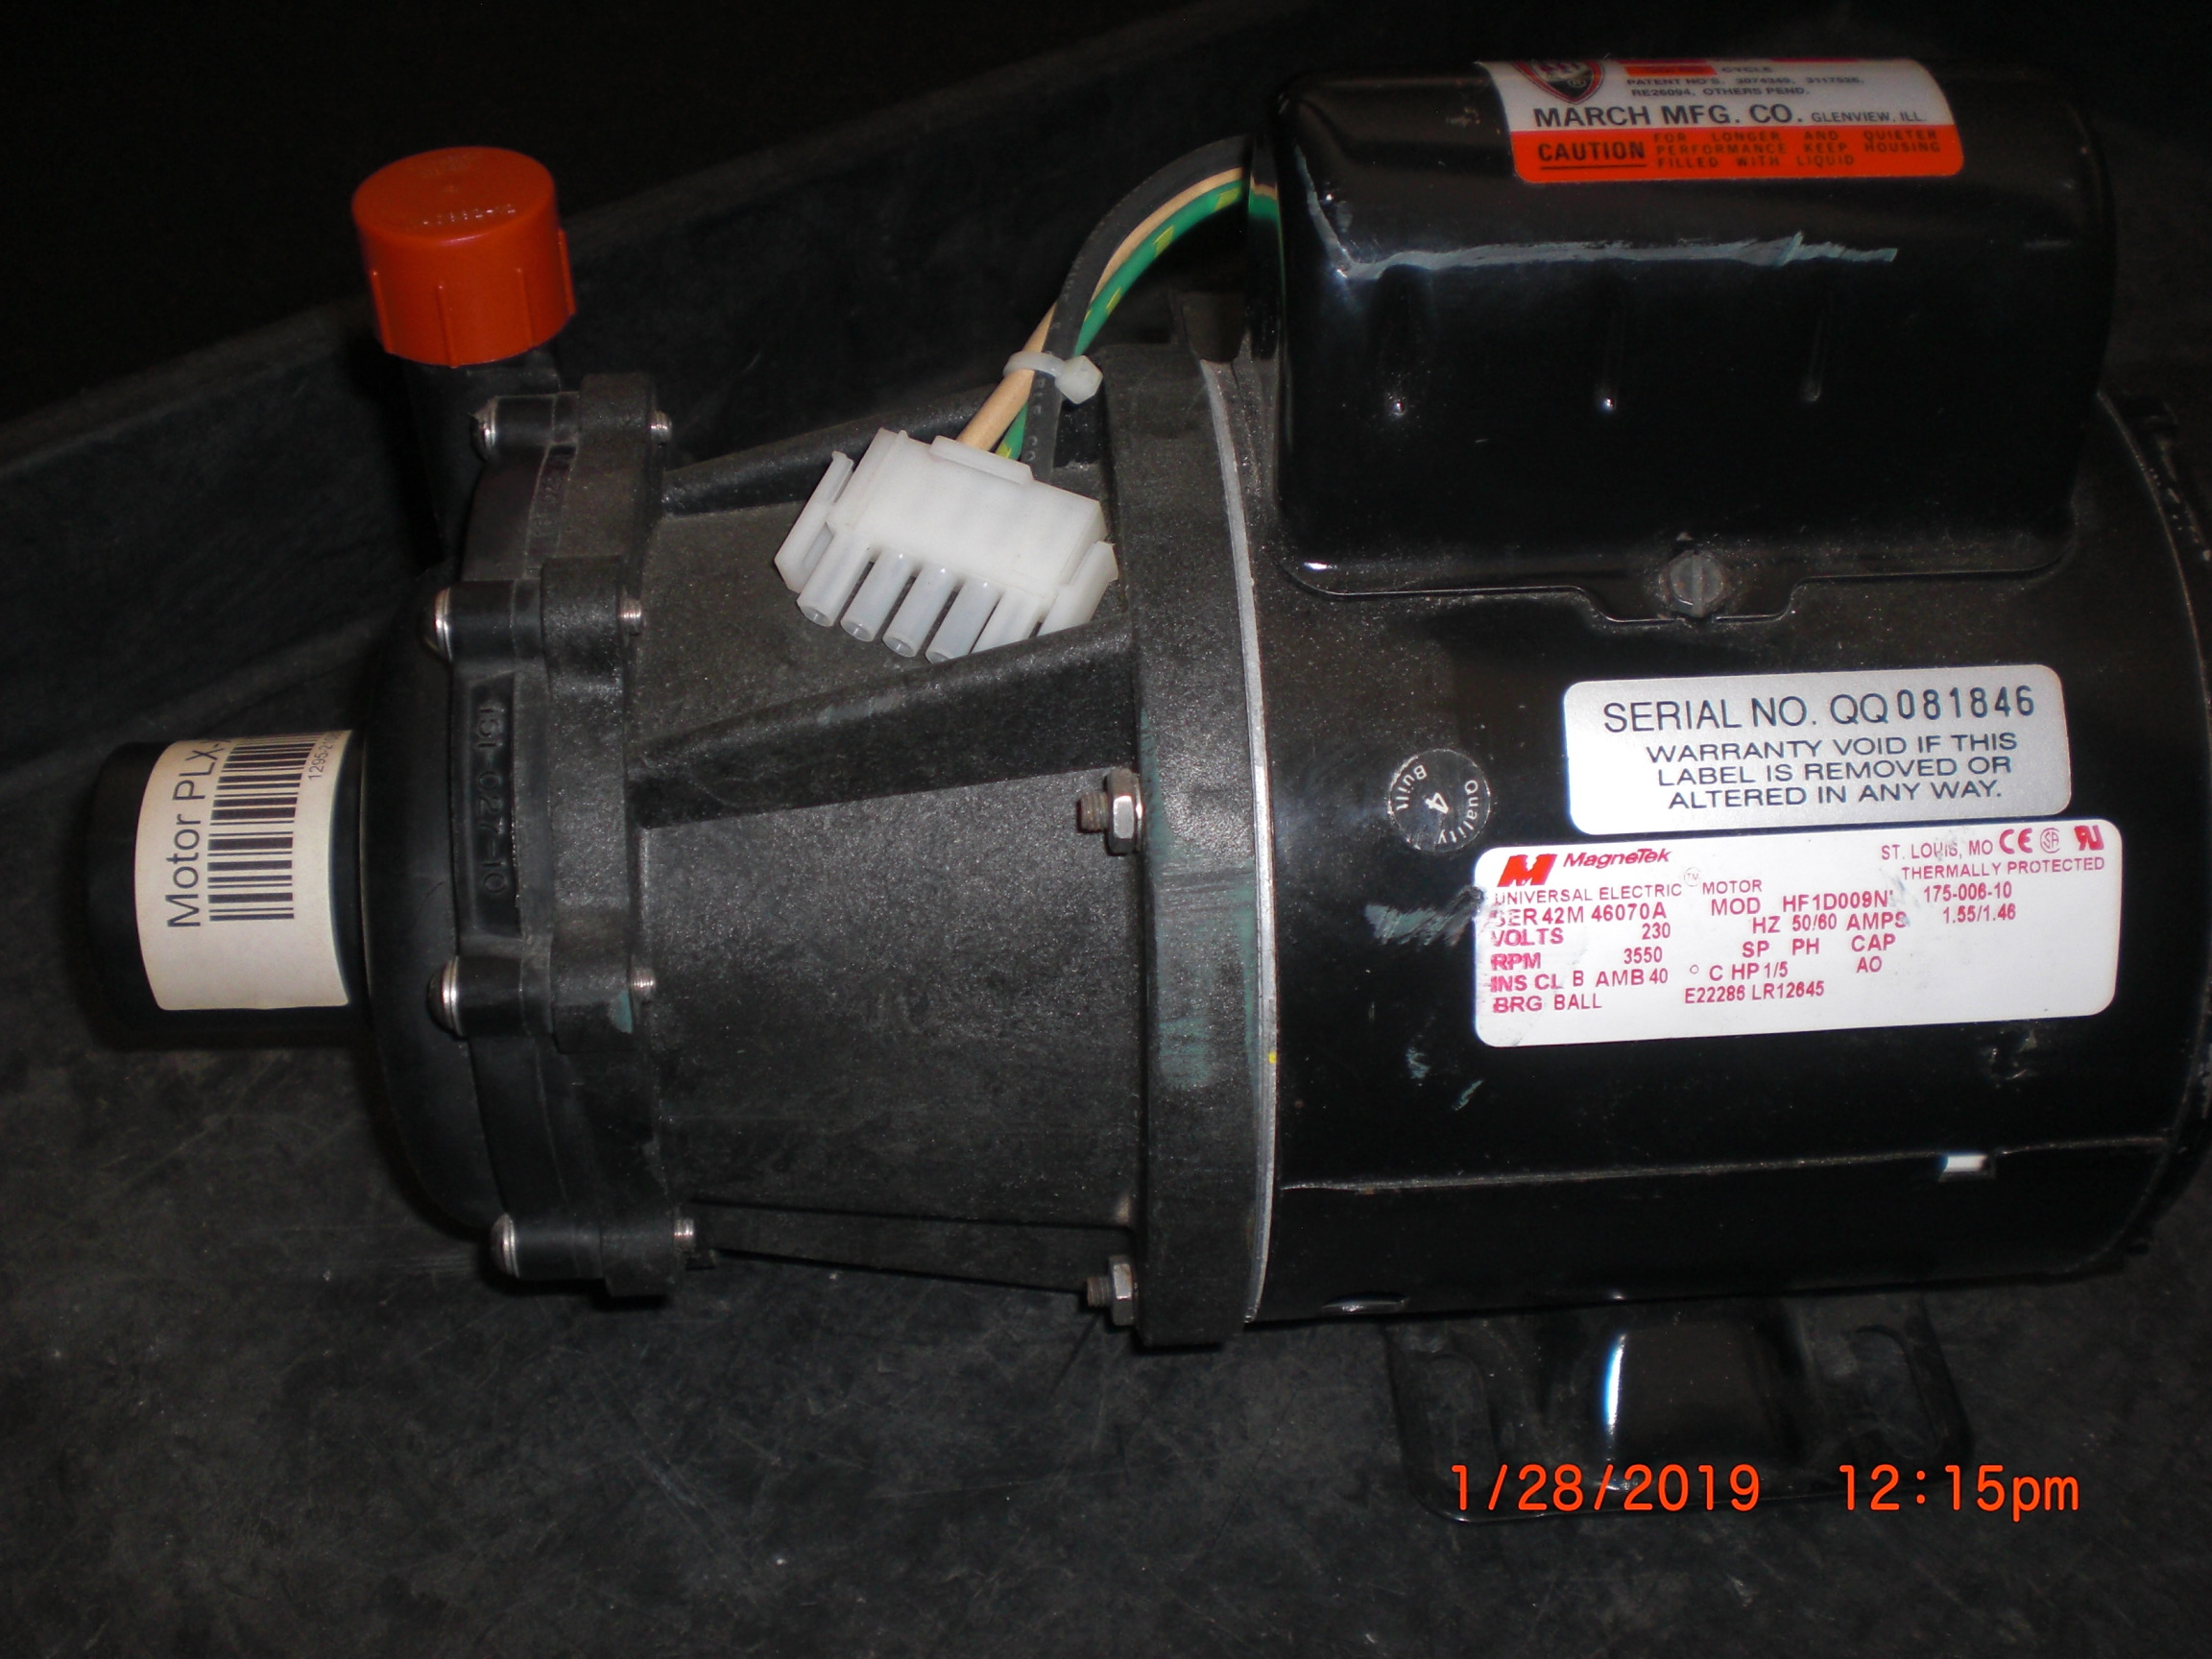 Pump MARCH 0151-0027-0630 TE-5.5C-MD 30GPM 230VAC  in 1in FPT out 3/4MPT